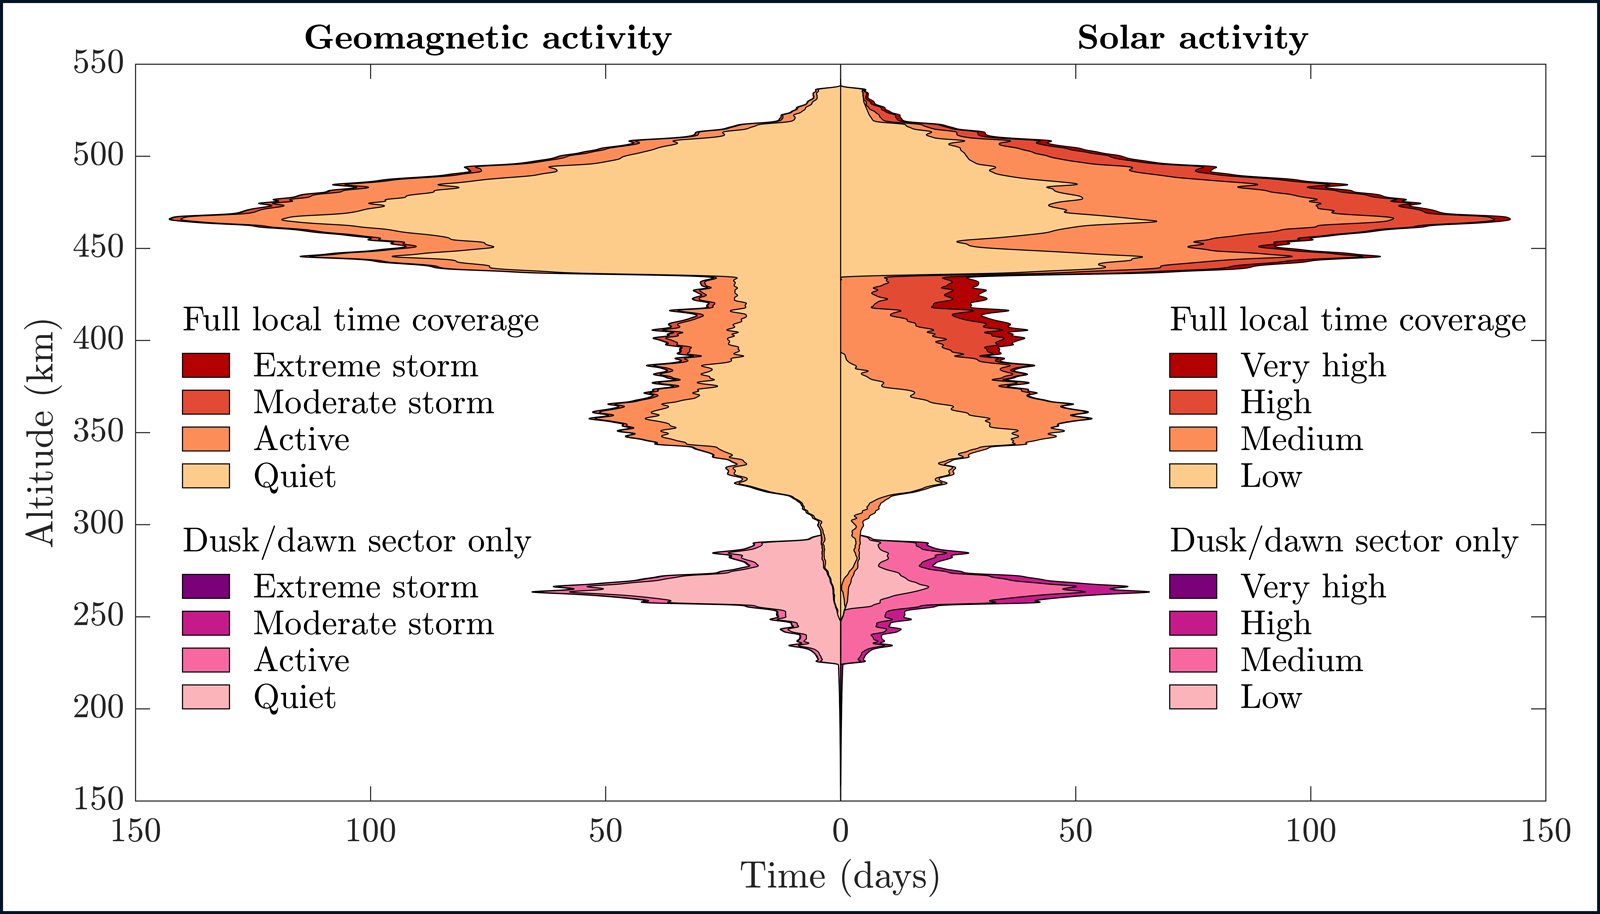 Figure showing distribution of accelerometer density observations of geomagnetic and solar activity by altitude and observation duration